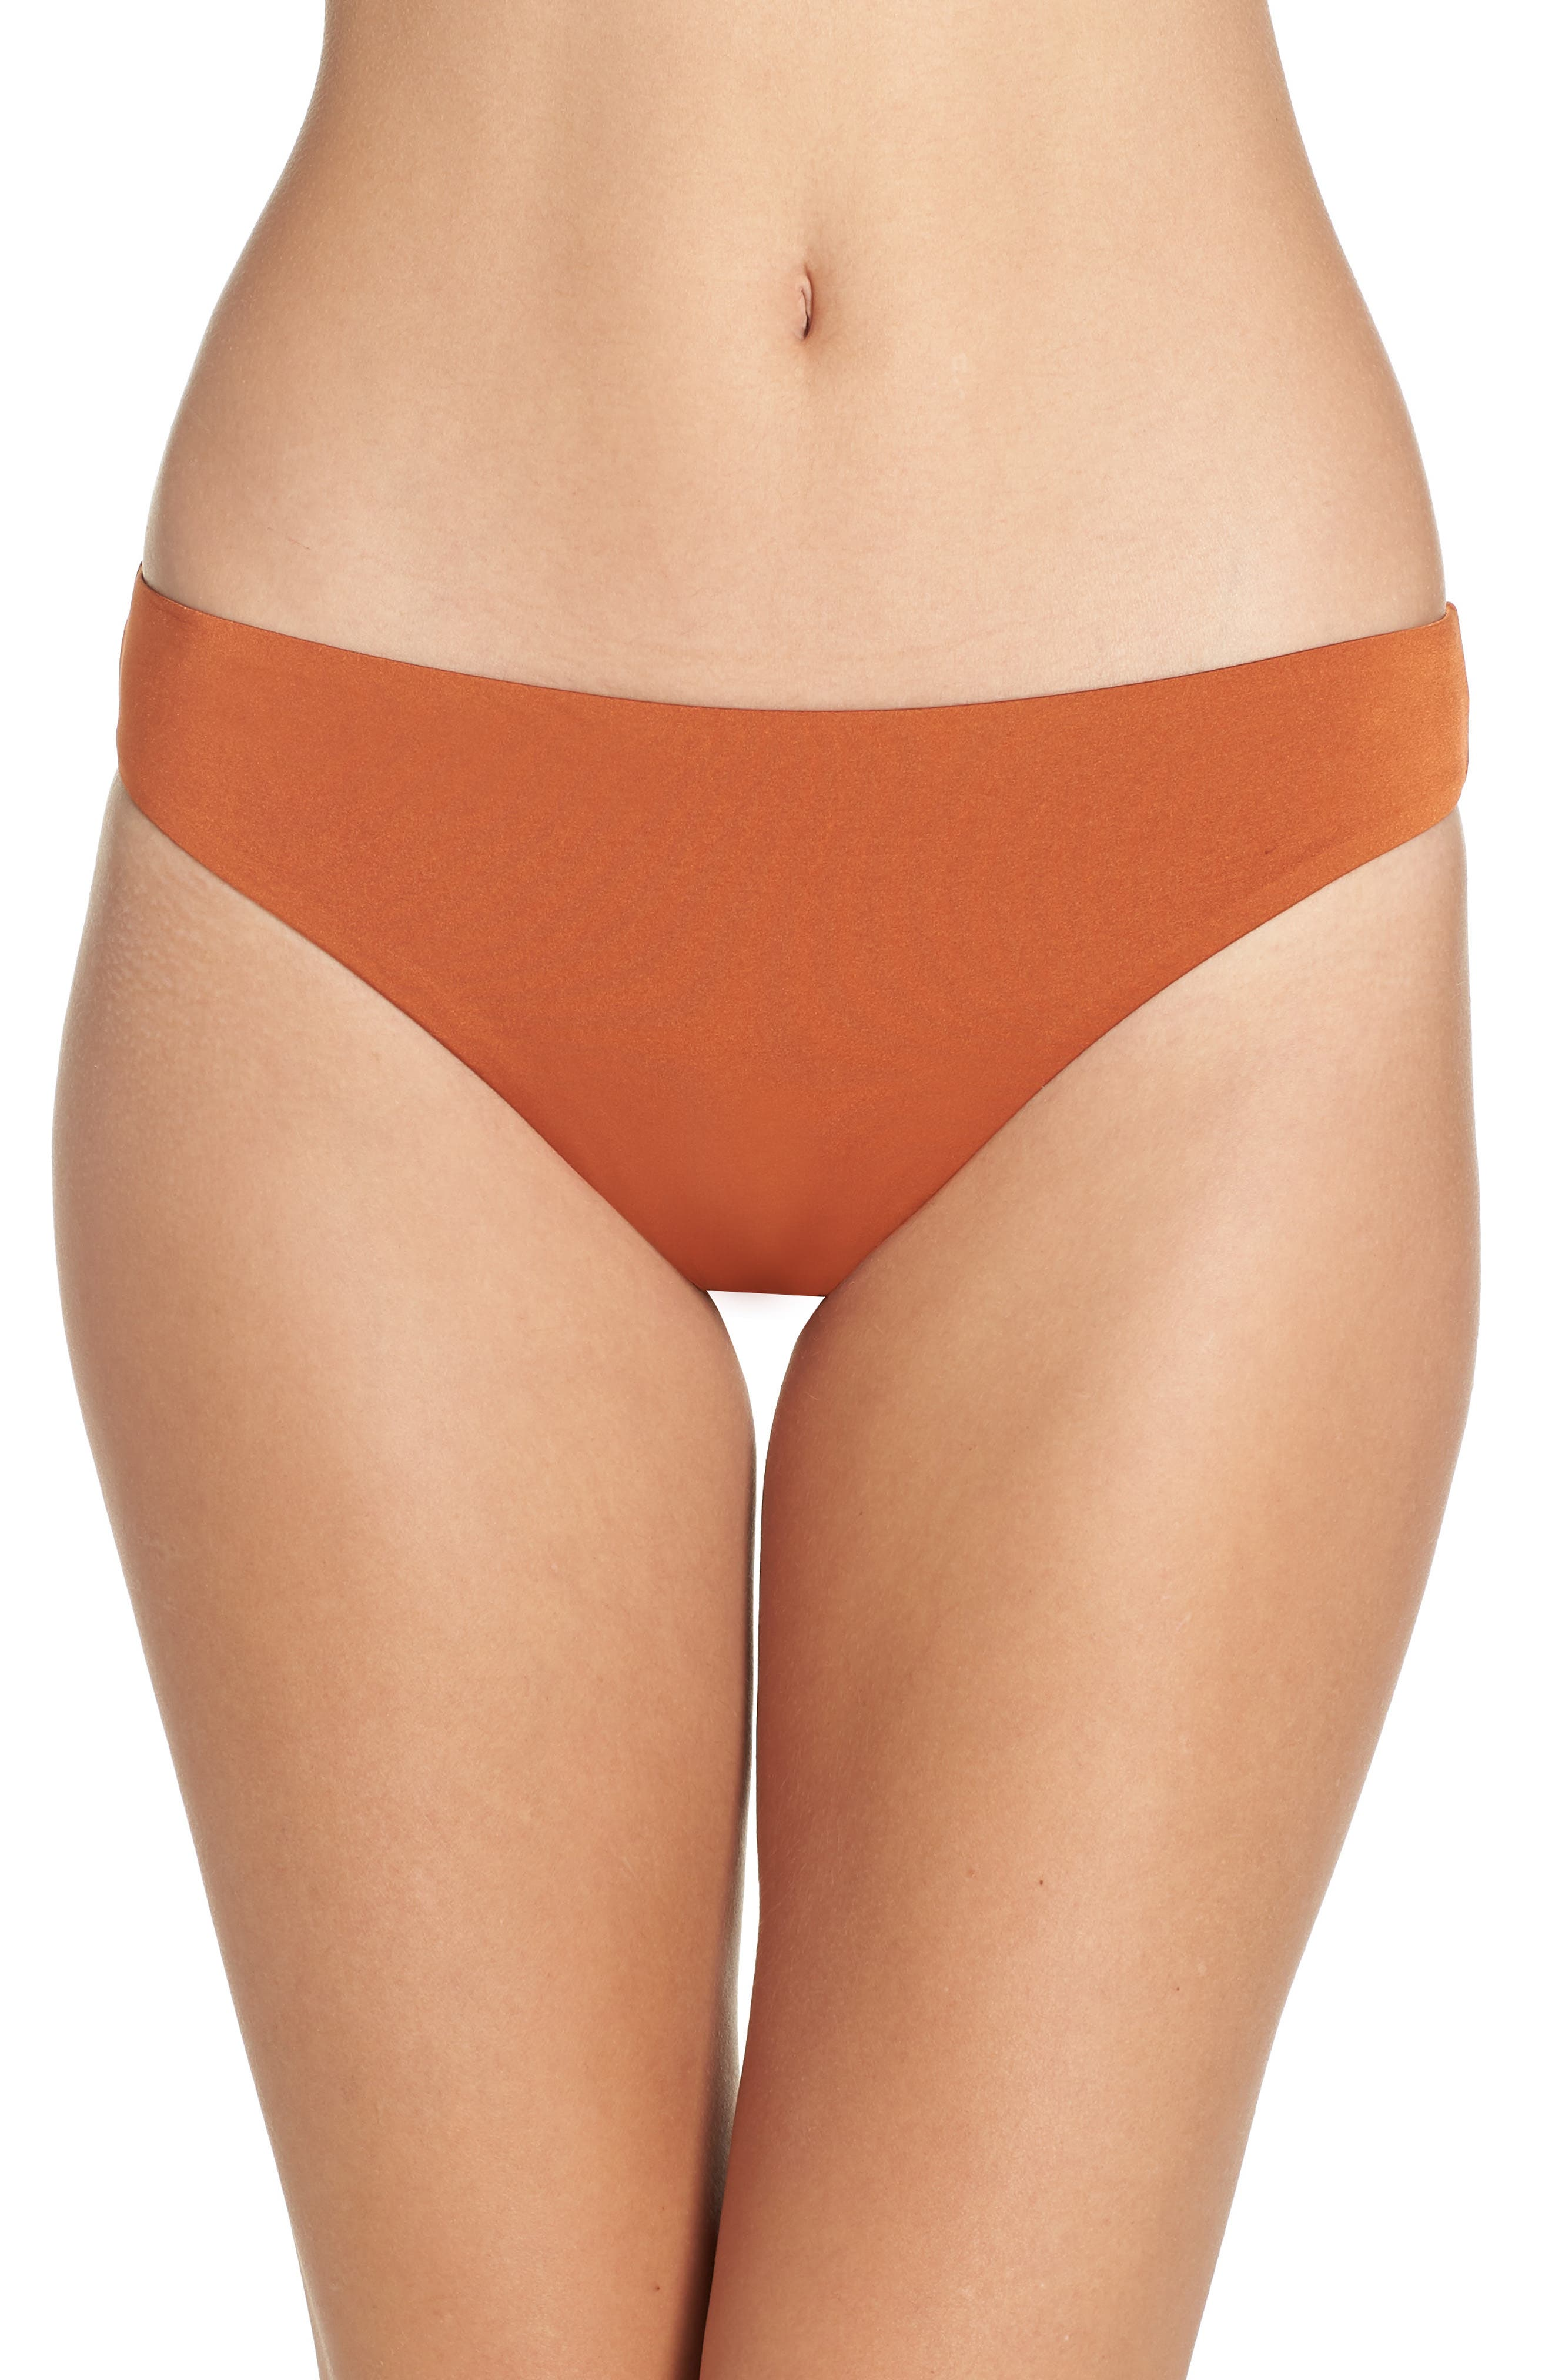 Route 66 Hipster Bikini Bottoms,                         Main,                         color, SIENNA